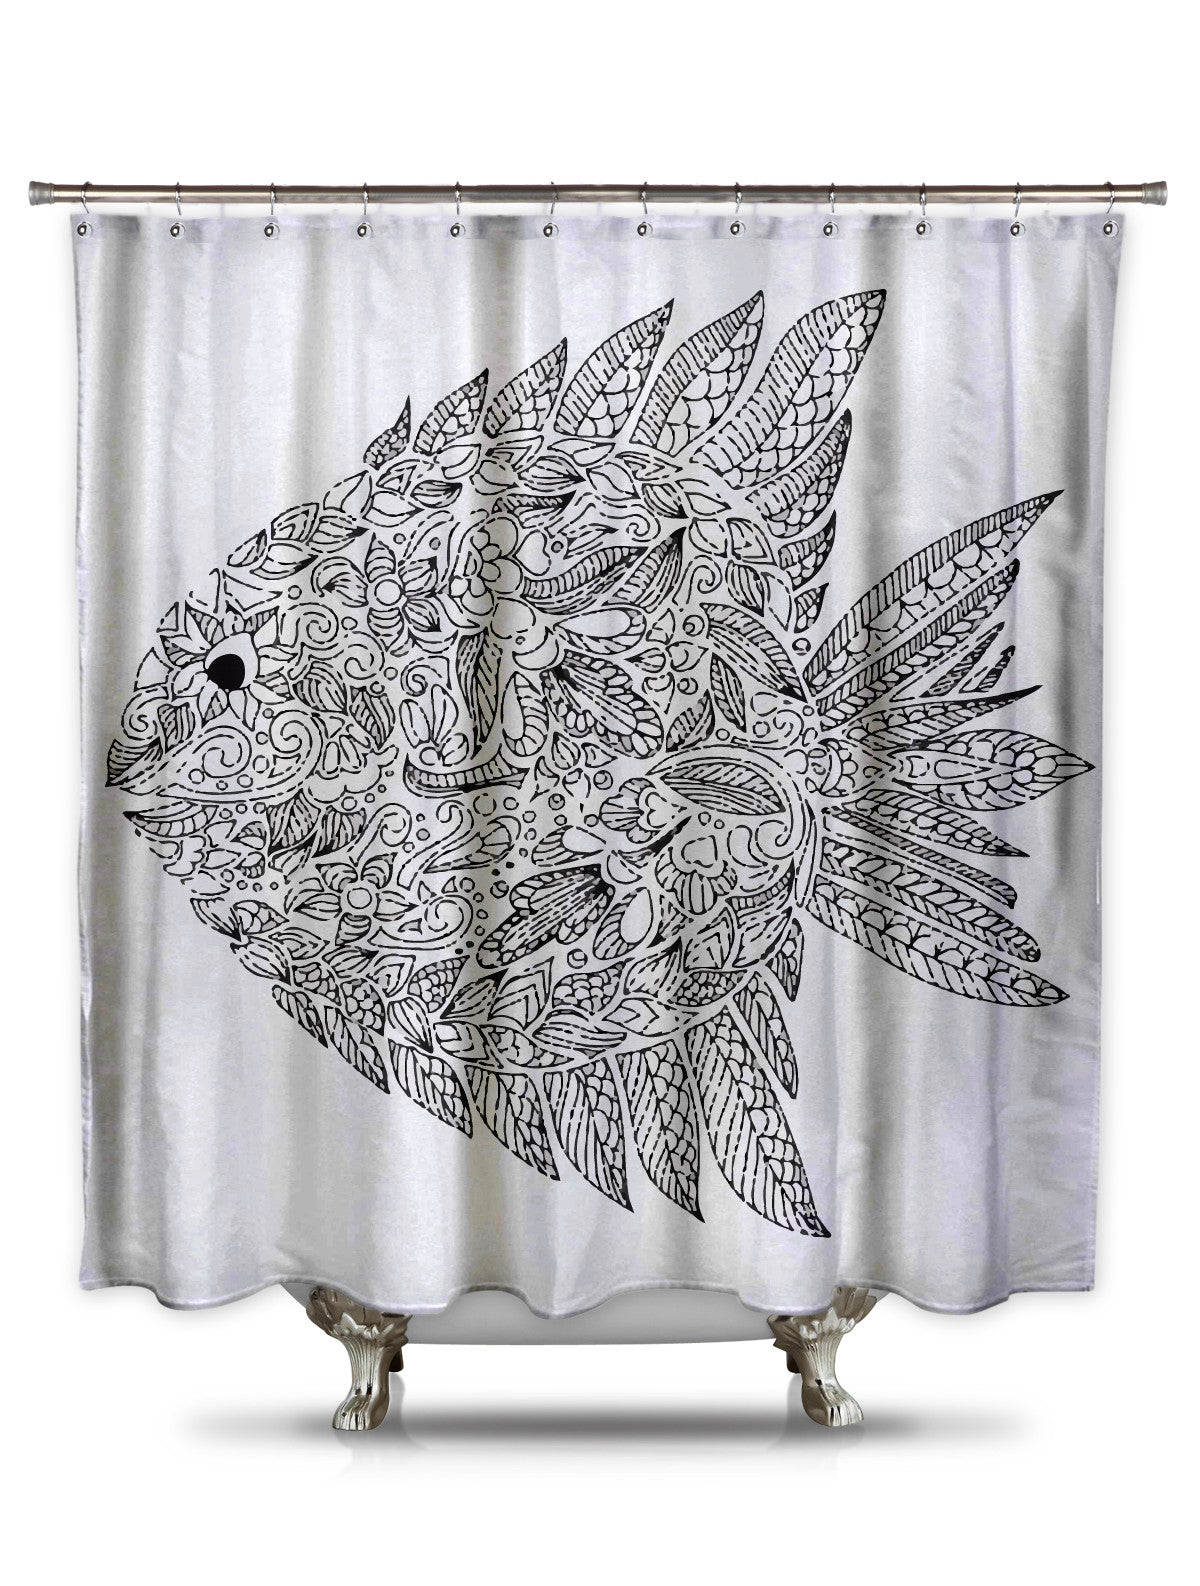 Black and White Fish Shower Curtain-Adult Coloring Book Series